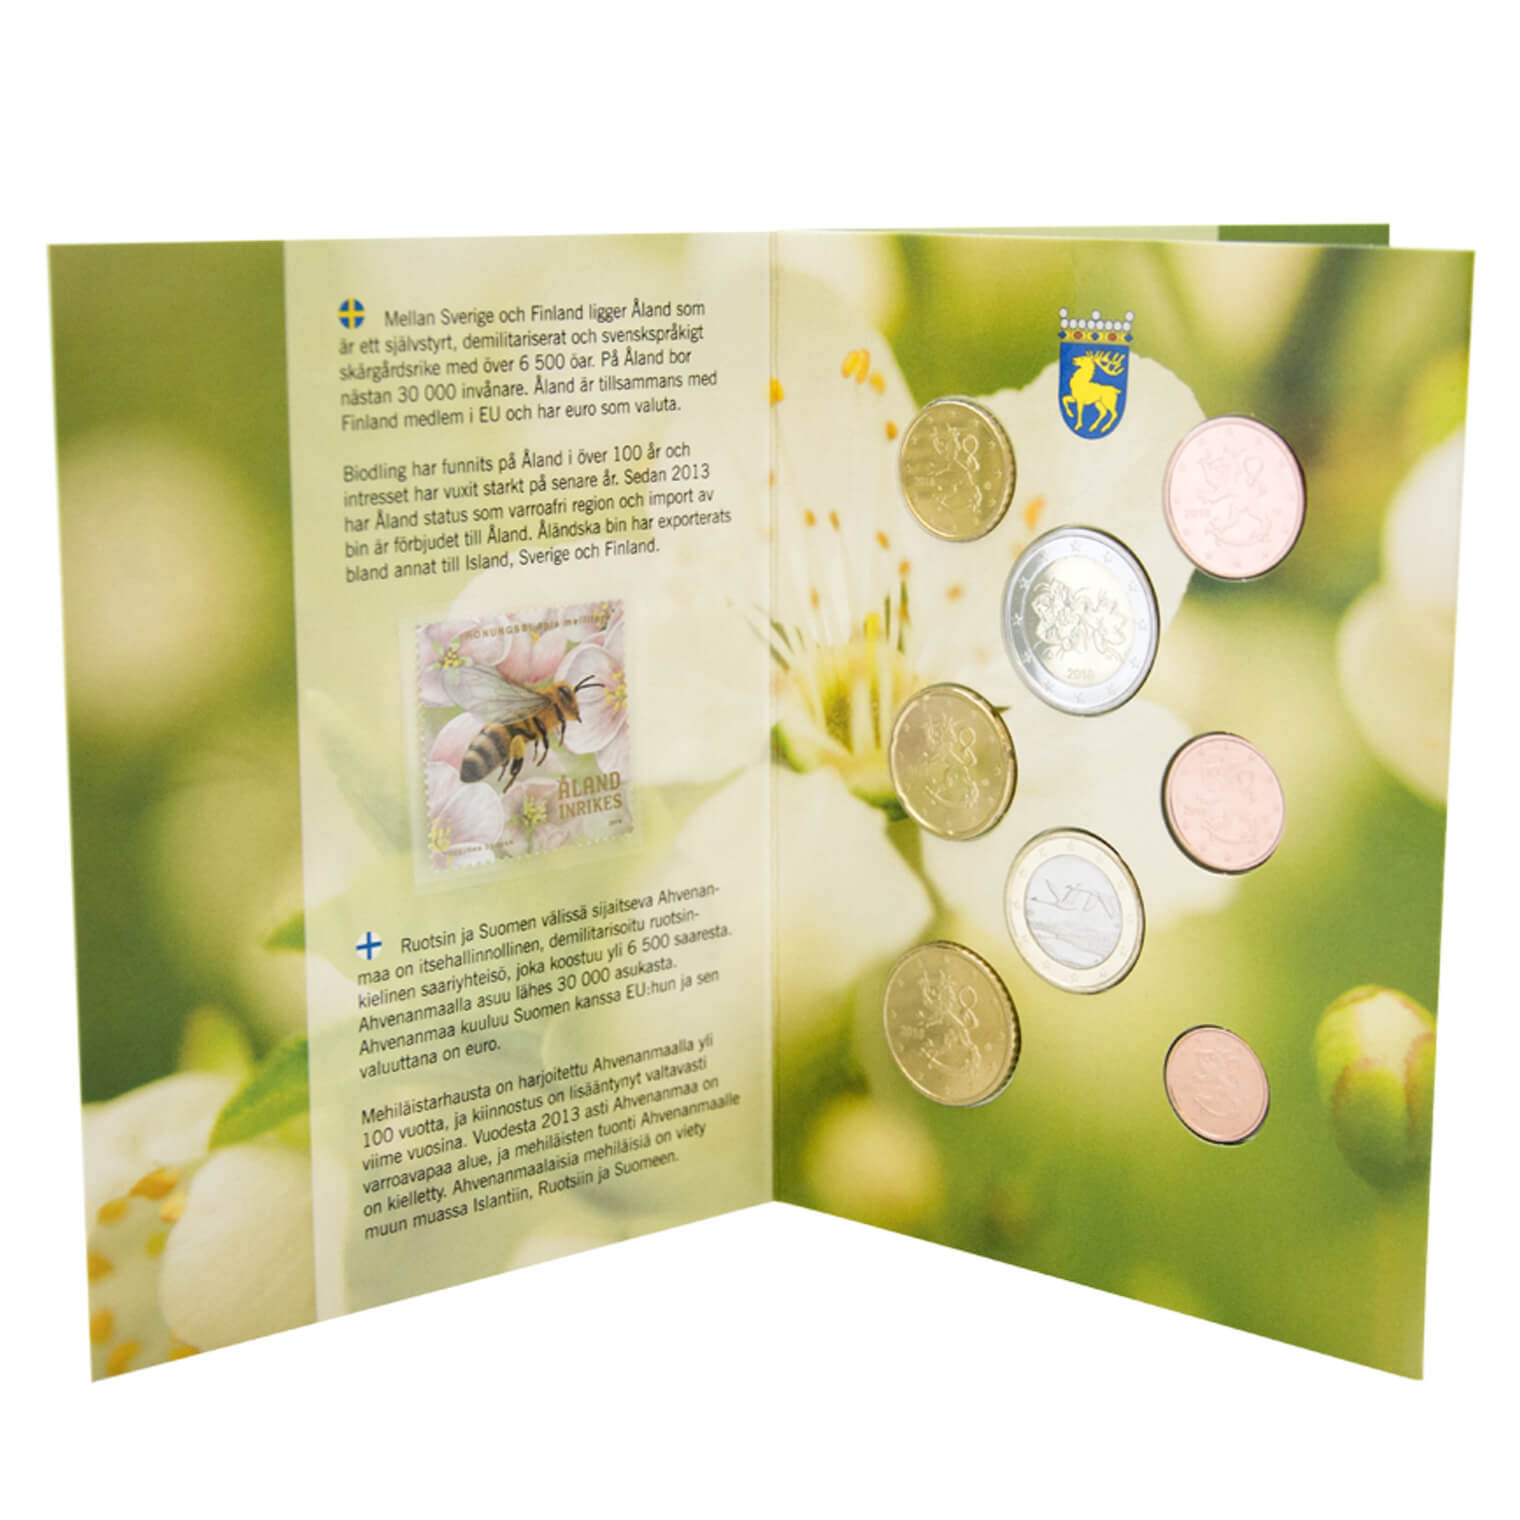 Euro Coin Set 2018 Finland Aland Aland Post Webshop